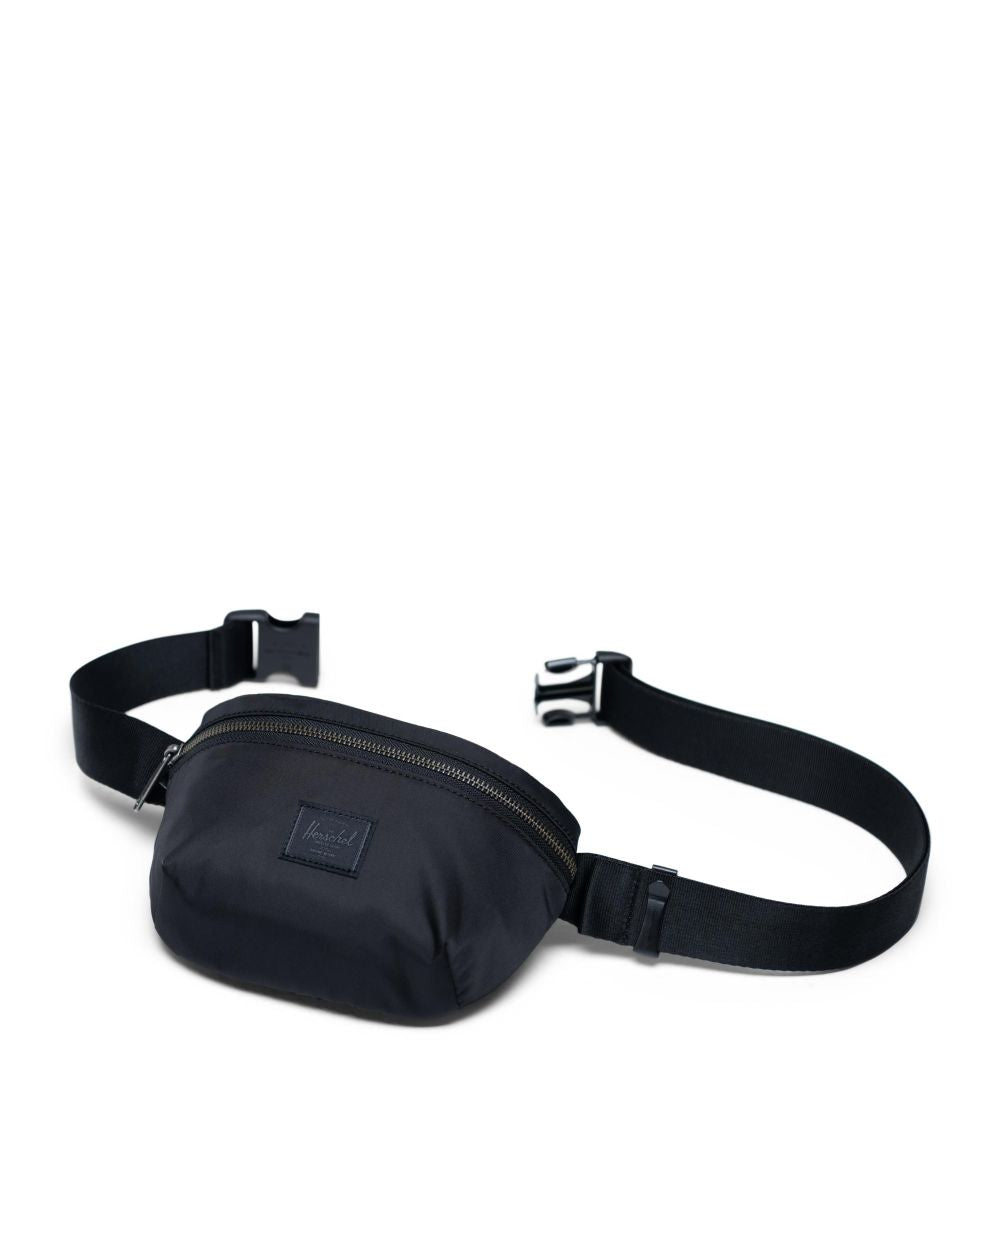 FOURTEEN HIP PACK SATIN - BLACK